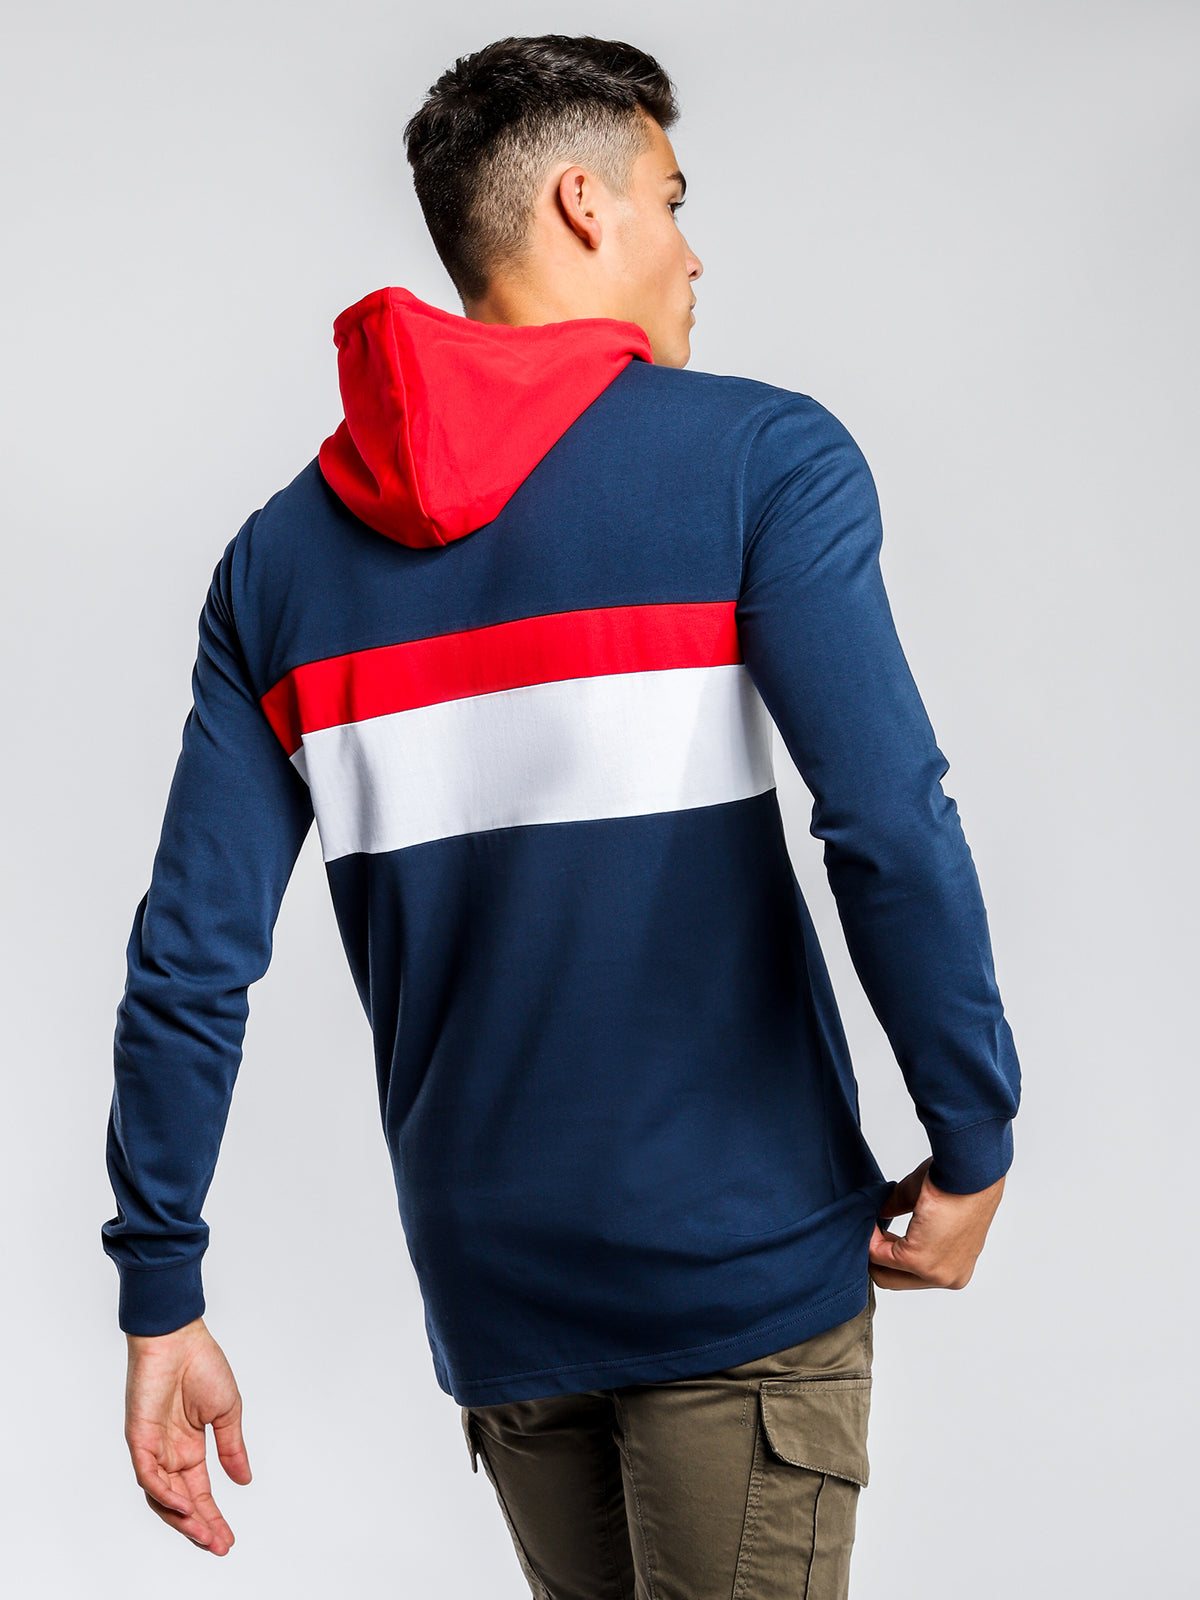 Valence Long Sleeve Hooded Tee in Blue